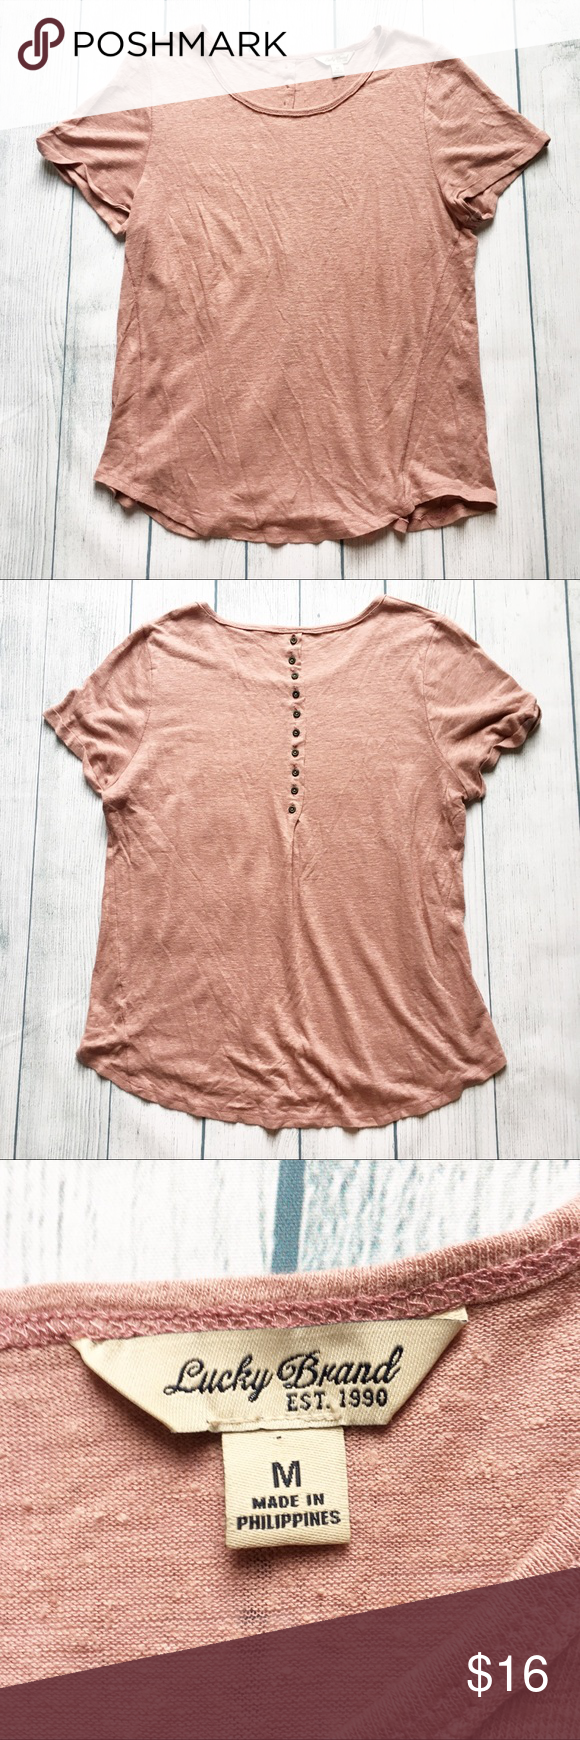 80daec18 [Lucky Brand] Pink Short Sleeve Button Top Excellent pre-owned condition.  This